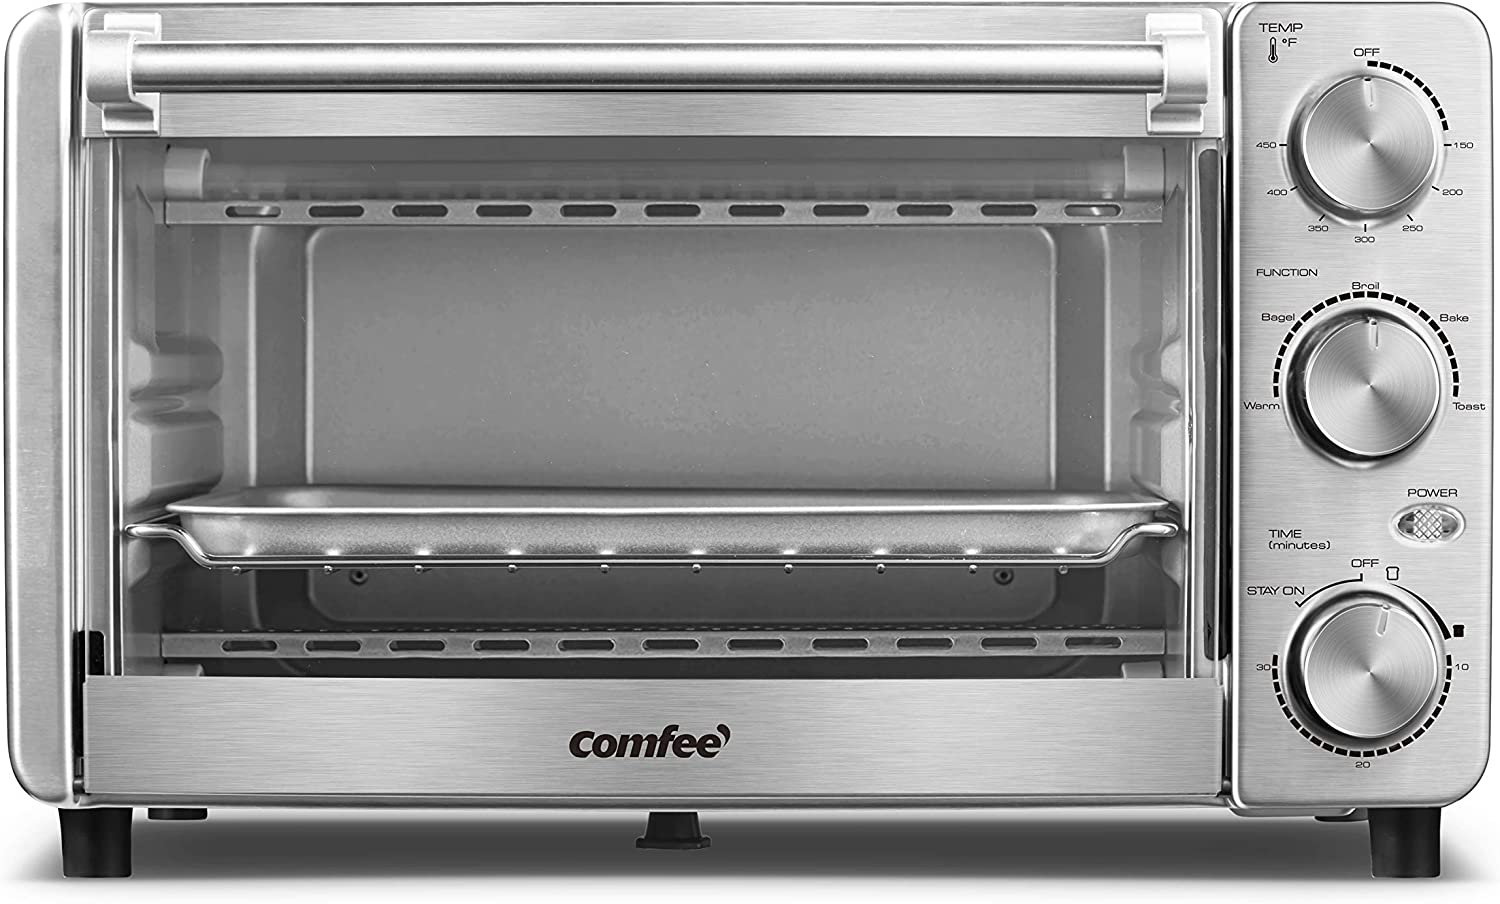 COMFEE' Toaster Oven, 4 Slice, 12L, Multi-function Stainless Steel Finish with Timer-Toast-Bake-Broil-Bagel-Warm Settings, 1100W, Perfect for Countertop (CFO-BG12(SS)) (Renewed)